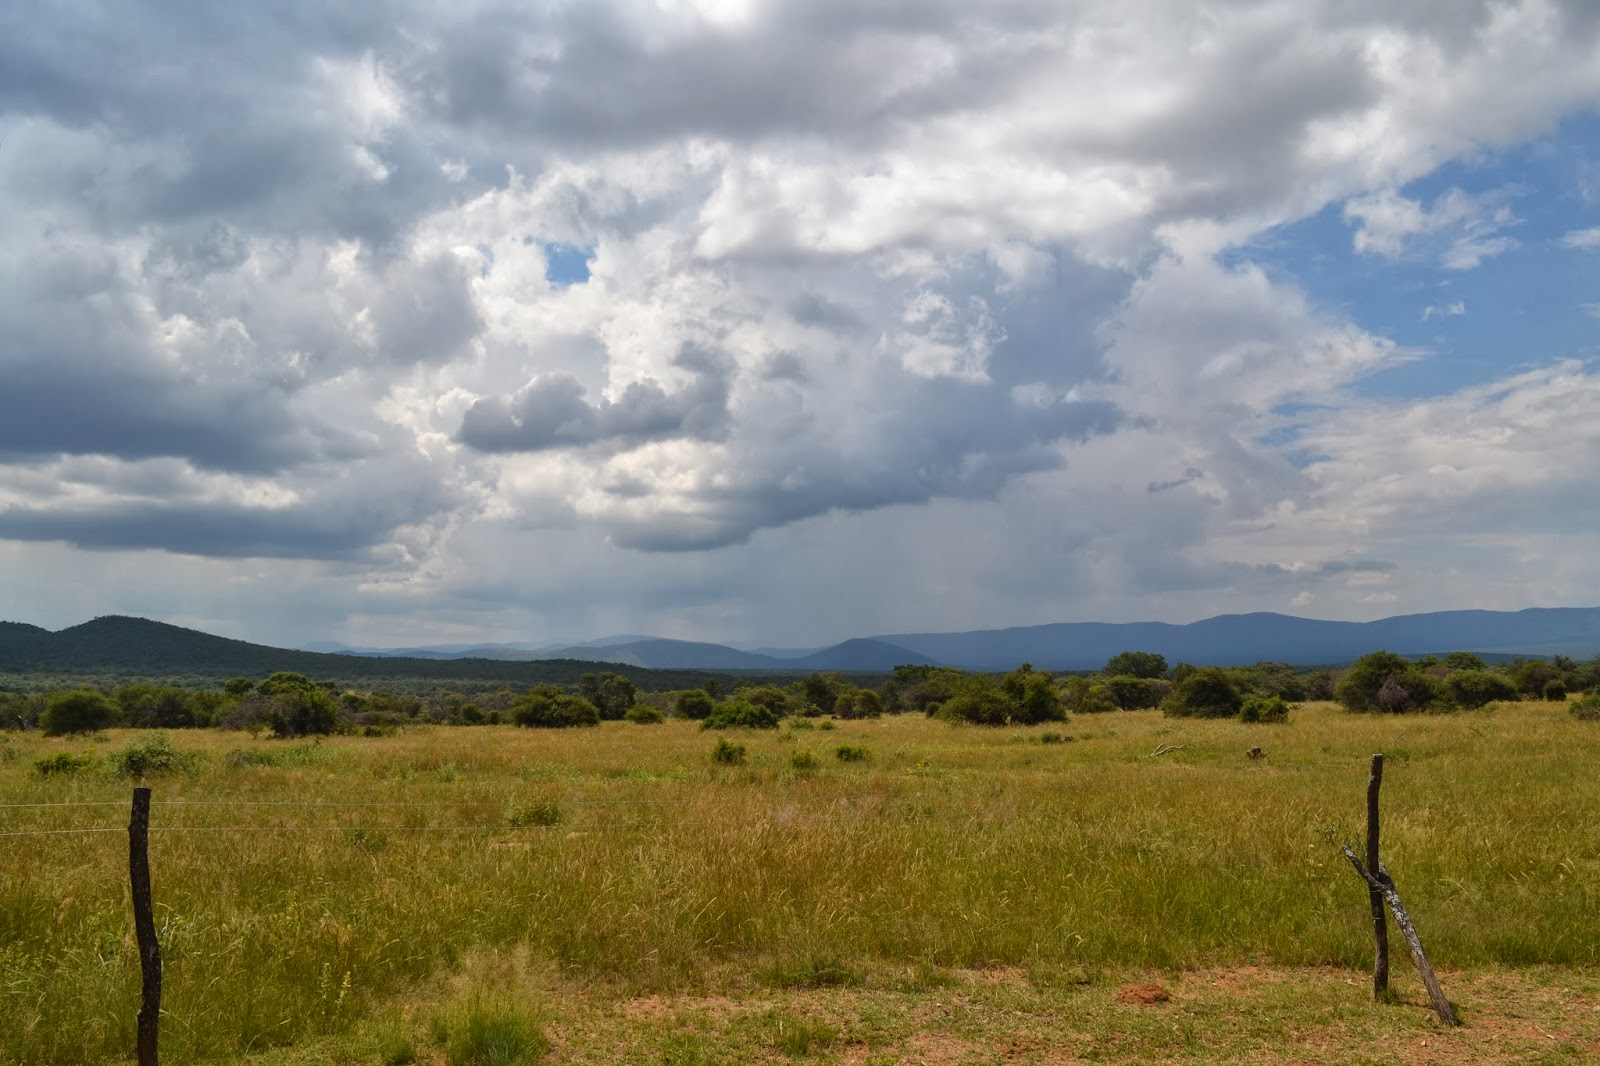 Cloudy sky at Mabula Game Reserve